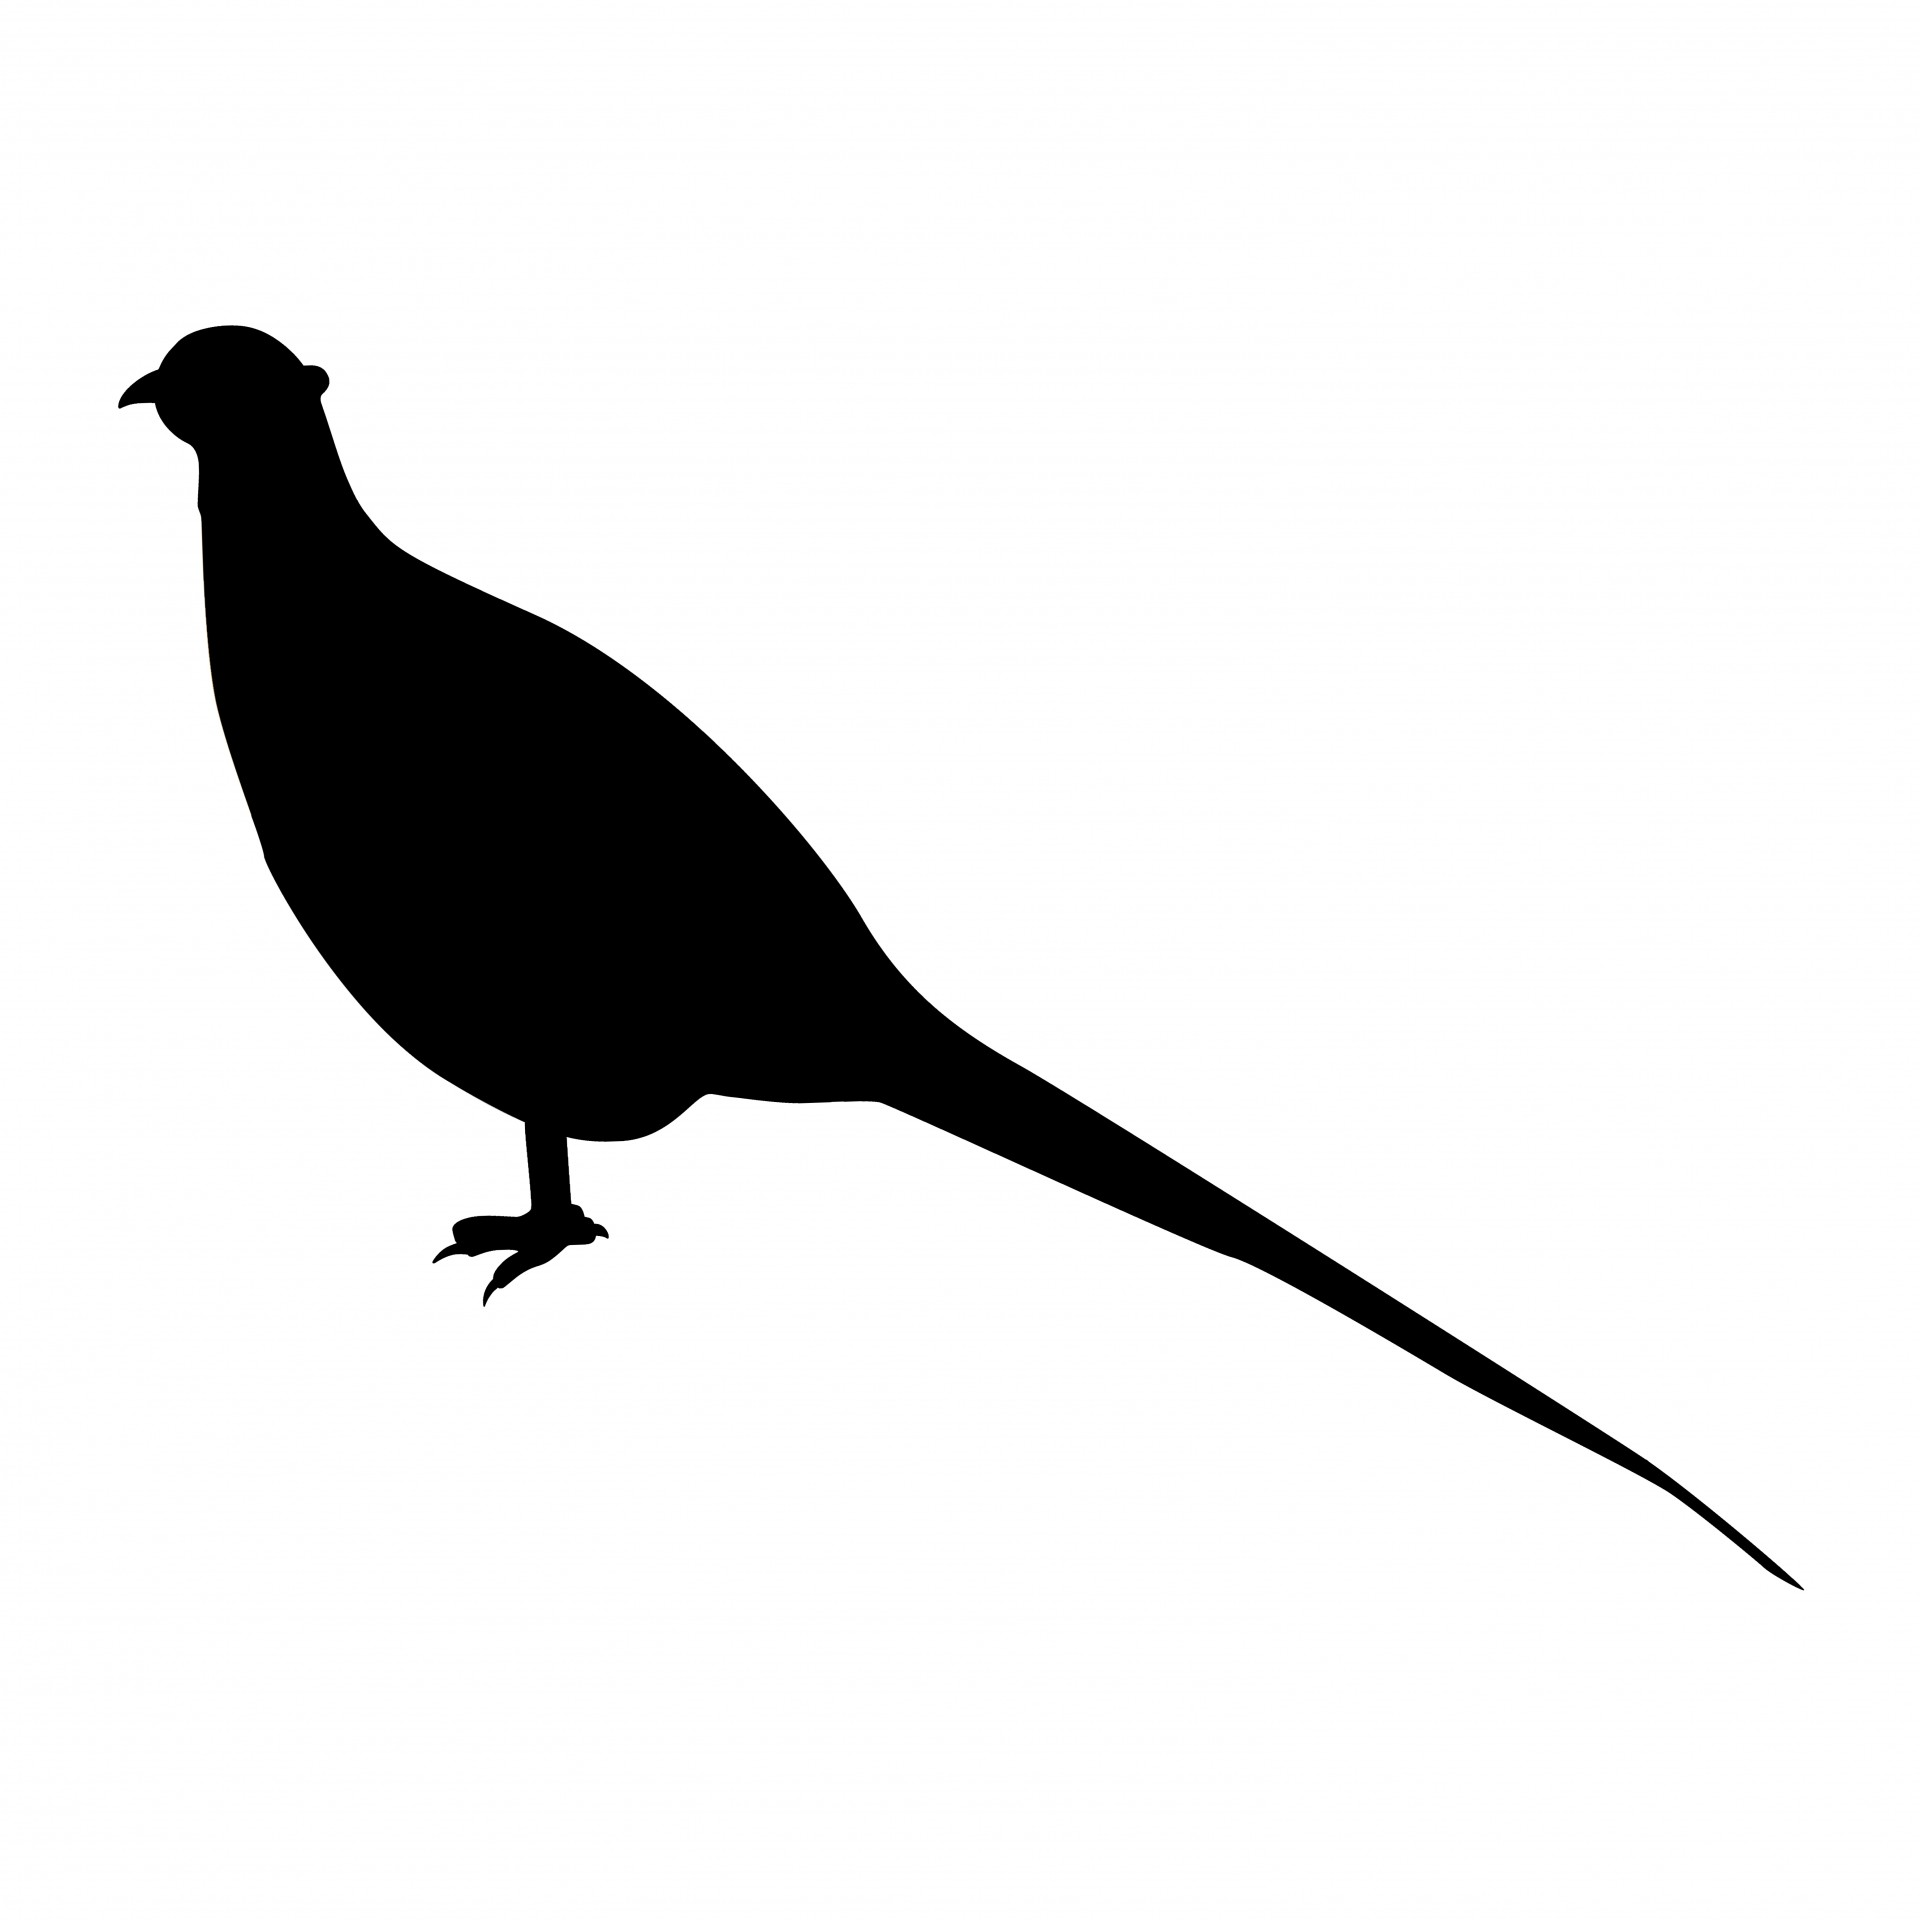 Pheasant clipart silhouette Pictures Silhouette Pheasant Free Stock